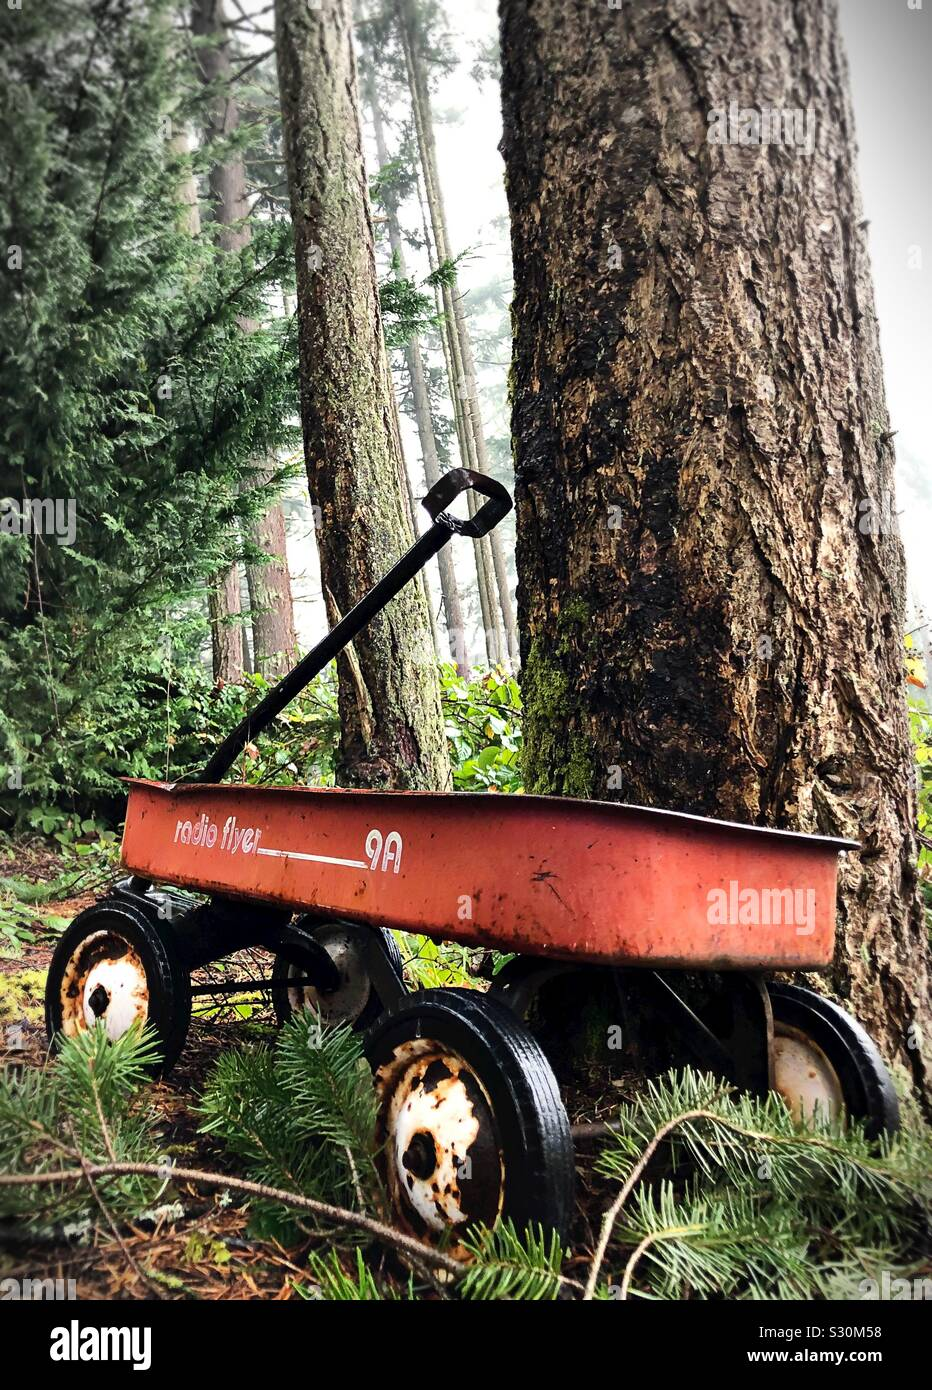 An old radio flyer wagon against a tree in a forest. Stock Photo